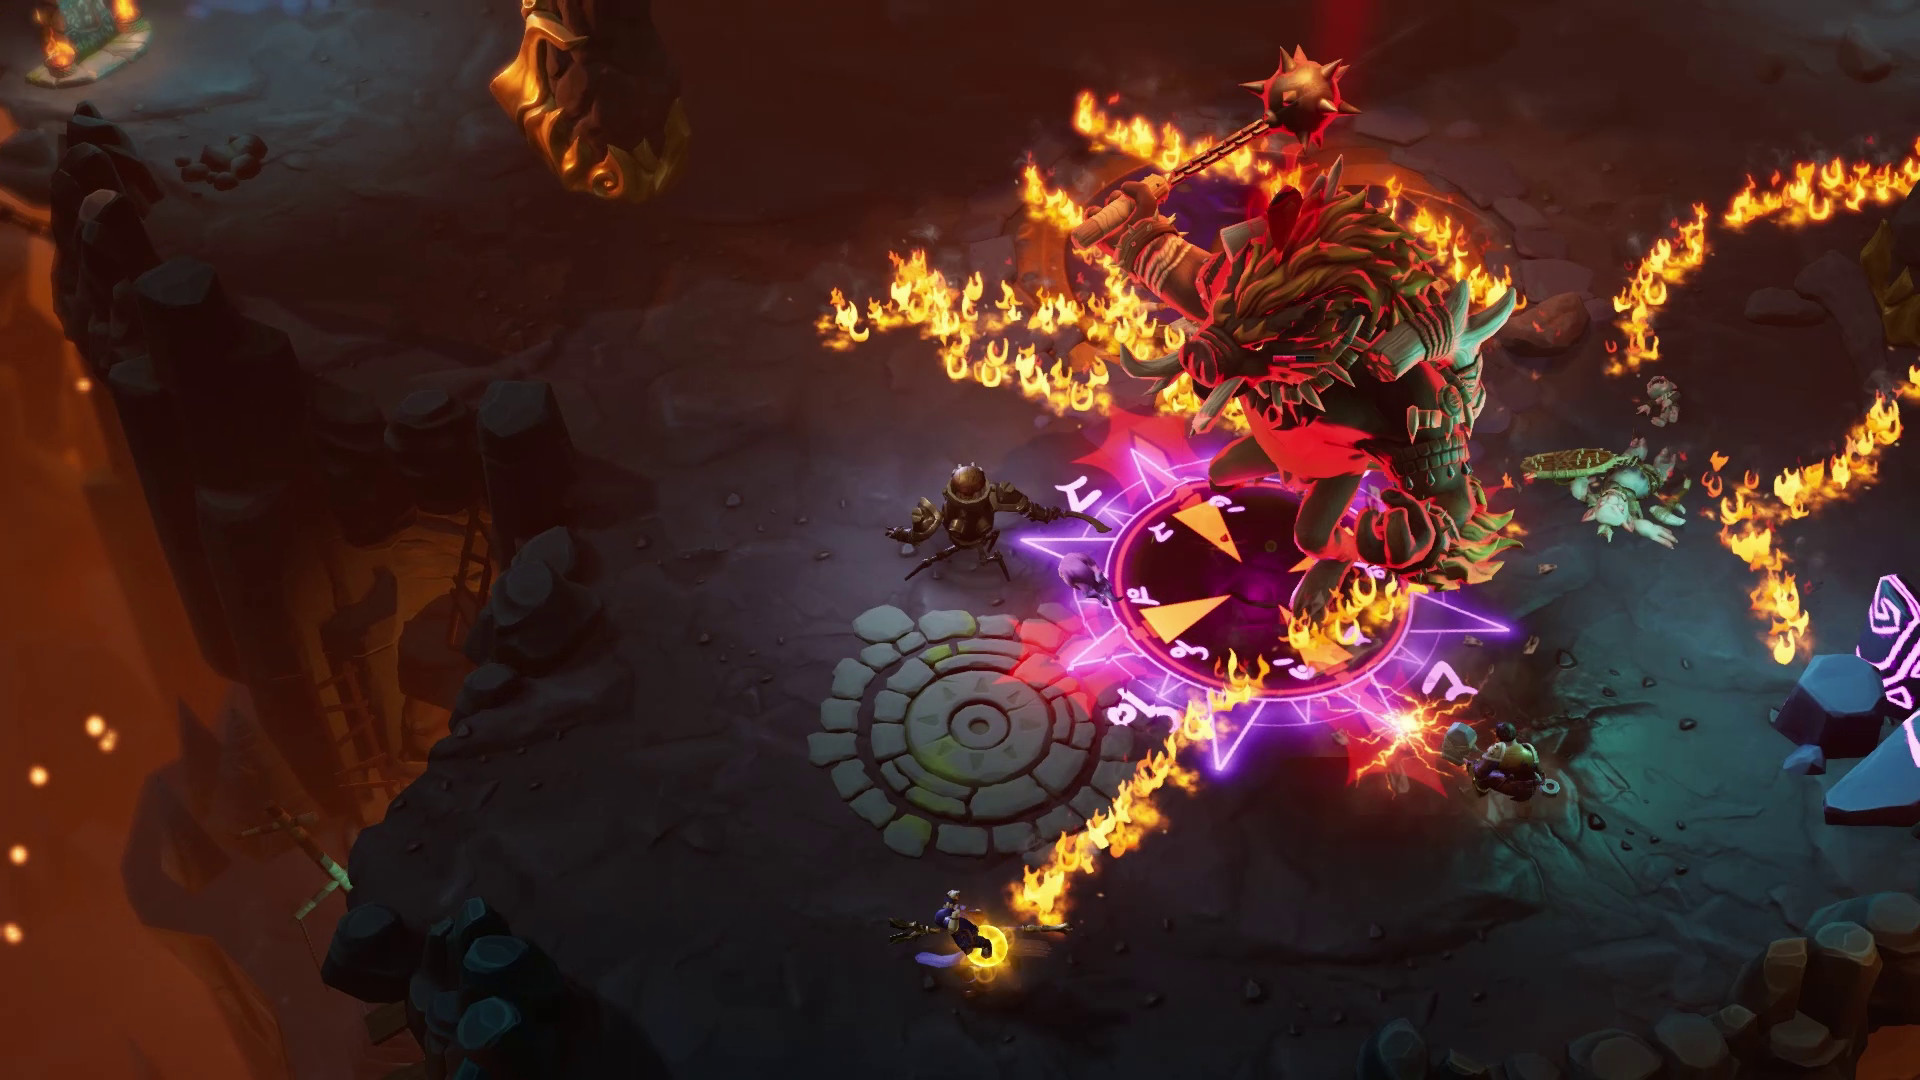 New-Torchlight-III-trailer-focuses-on-classes-companions-much-more-1.jpg